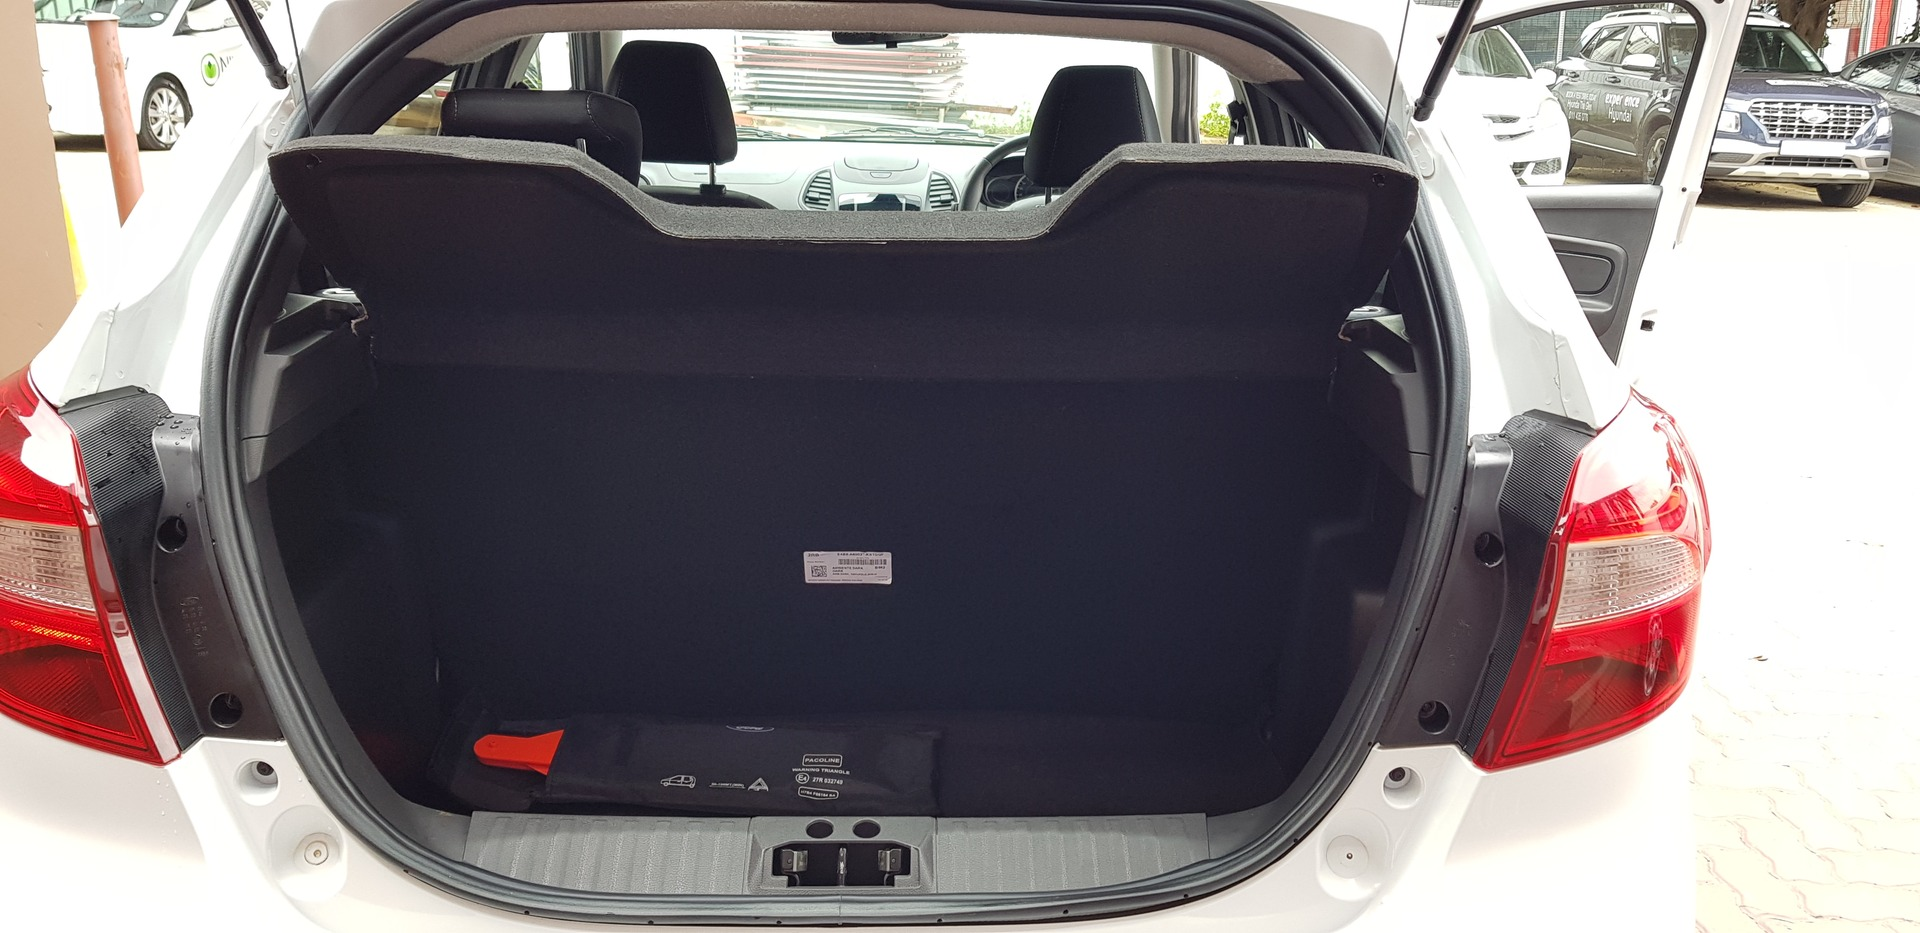 FORD 1.5Ti VCT AMBIENTE (5DR) Johannesburg 14332460